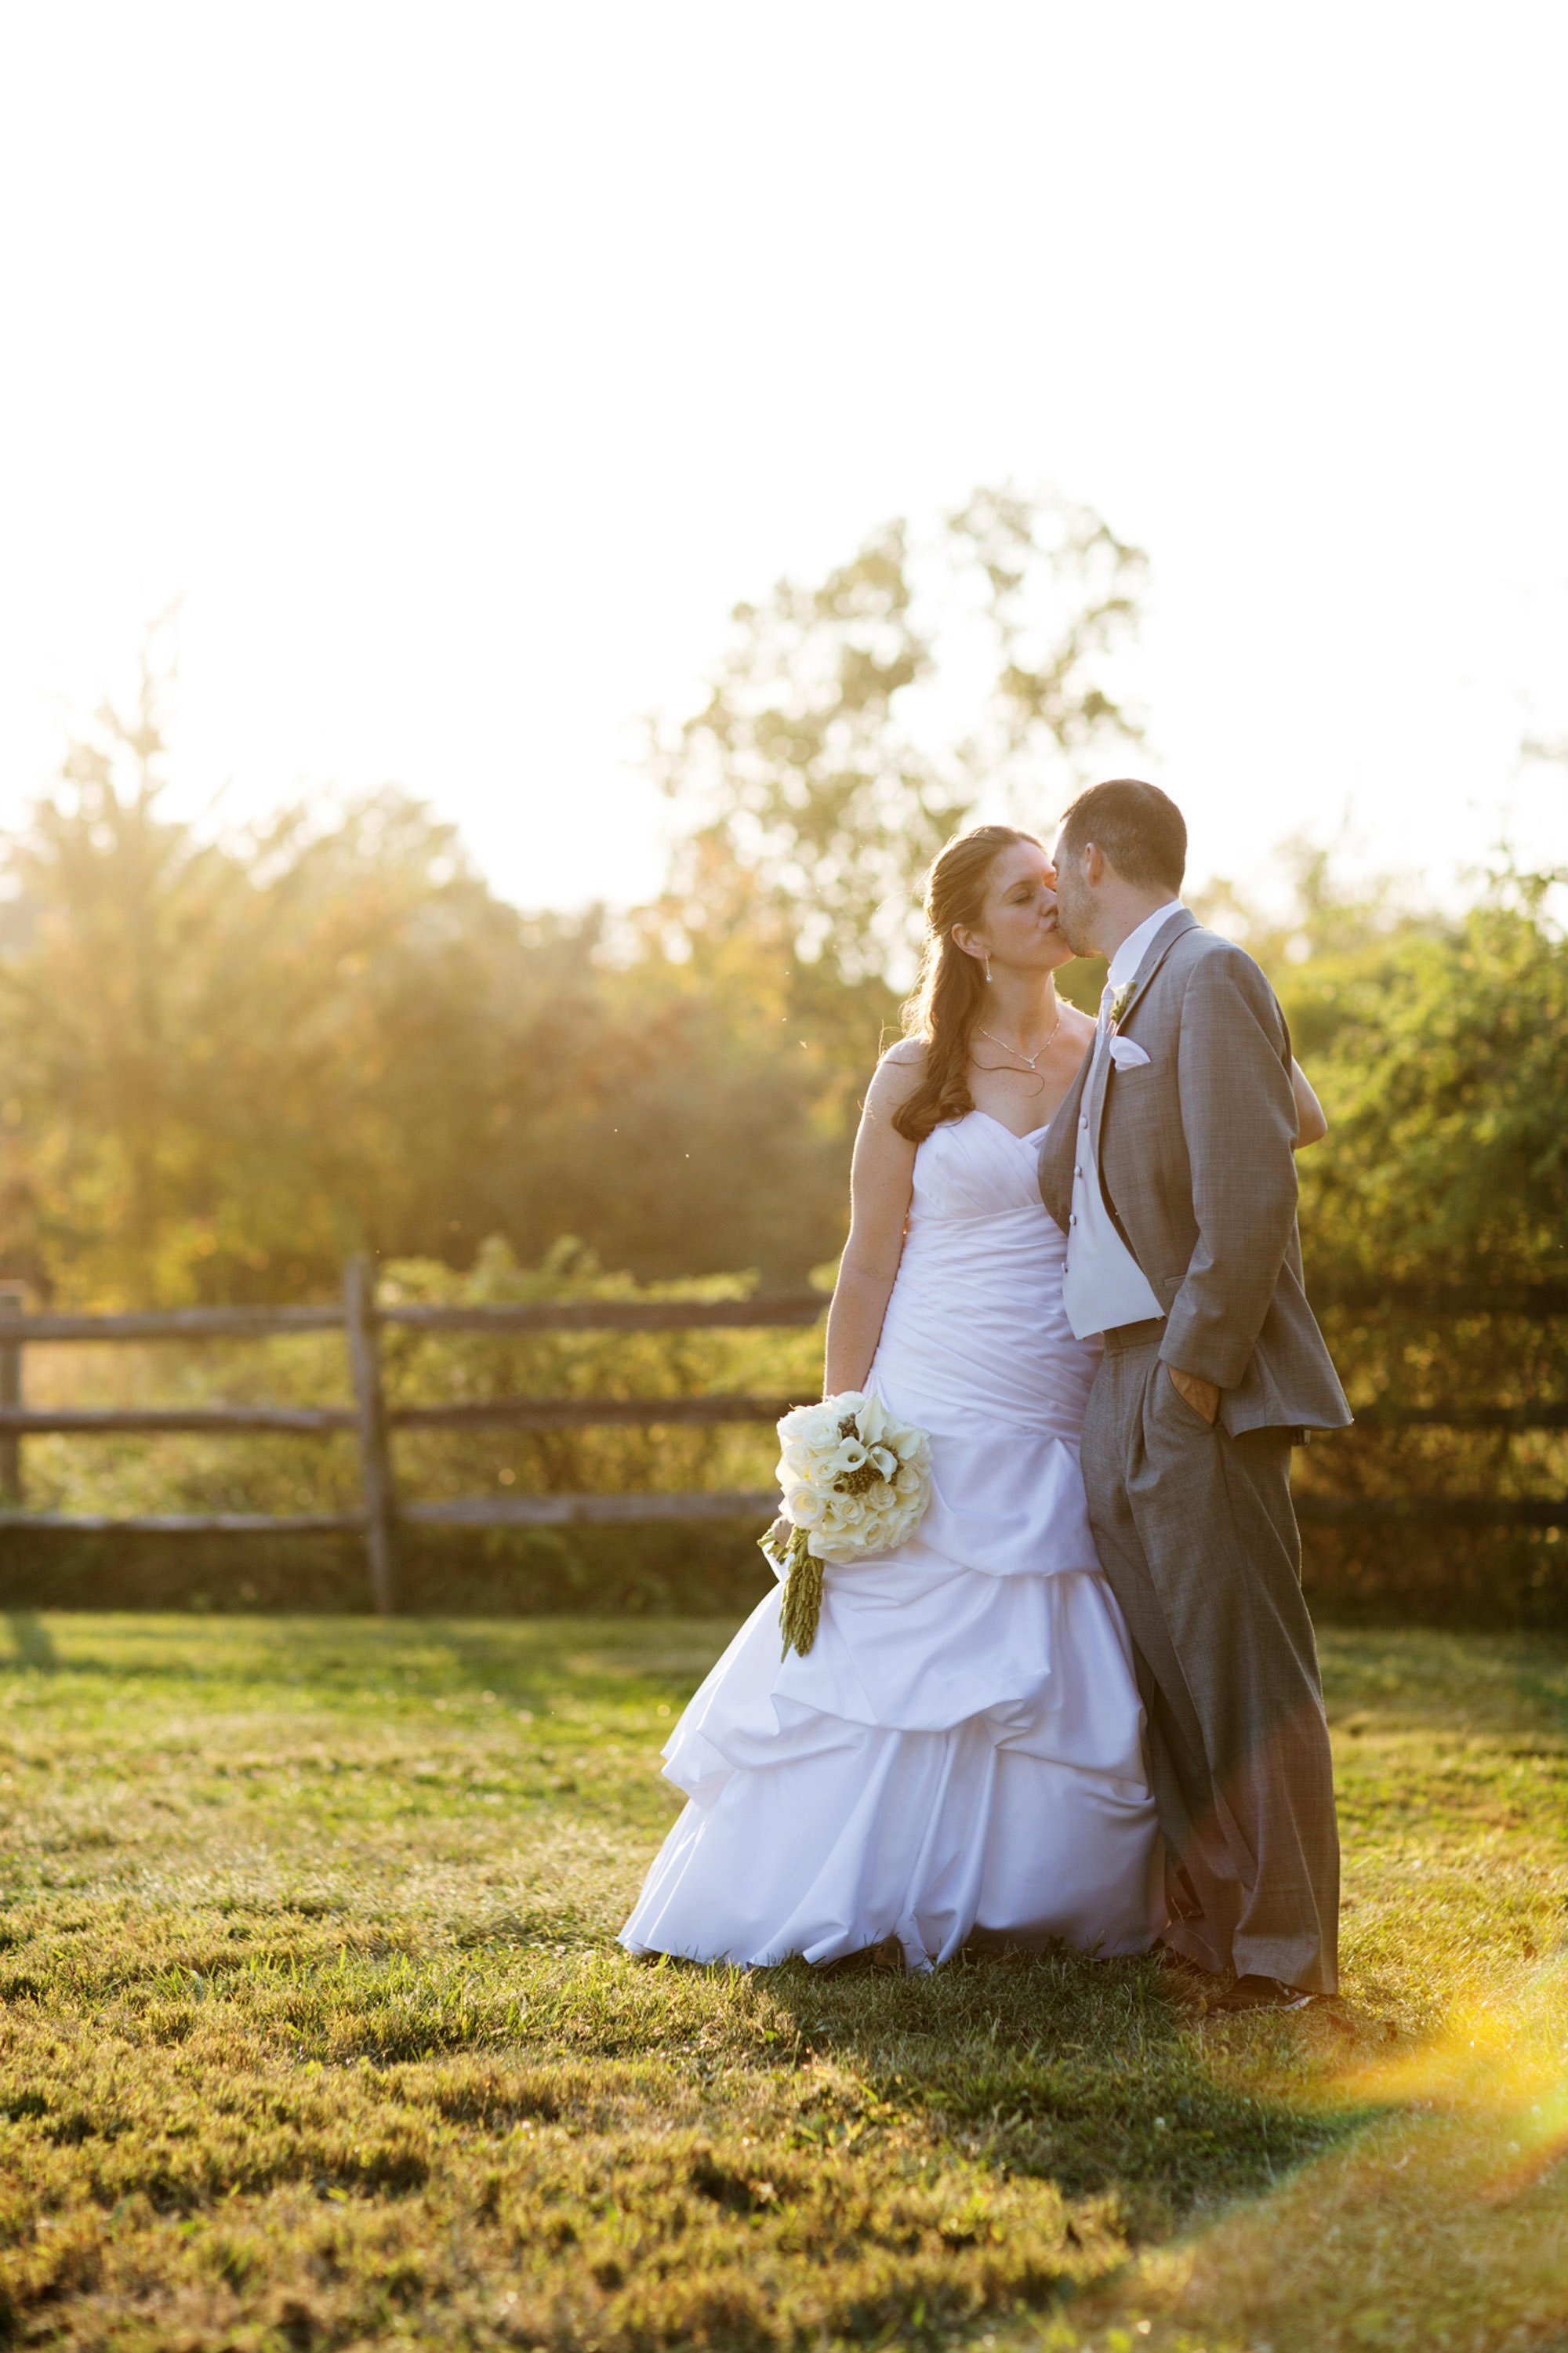 The couple kisses during sunset on their Comus Inn wedding day.